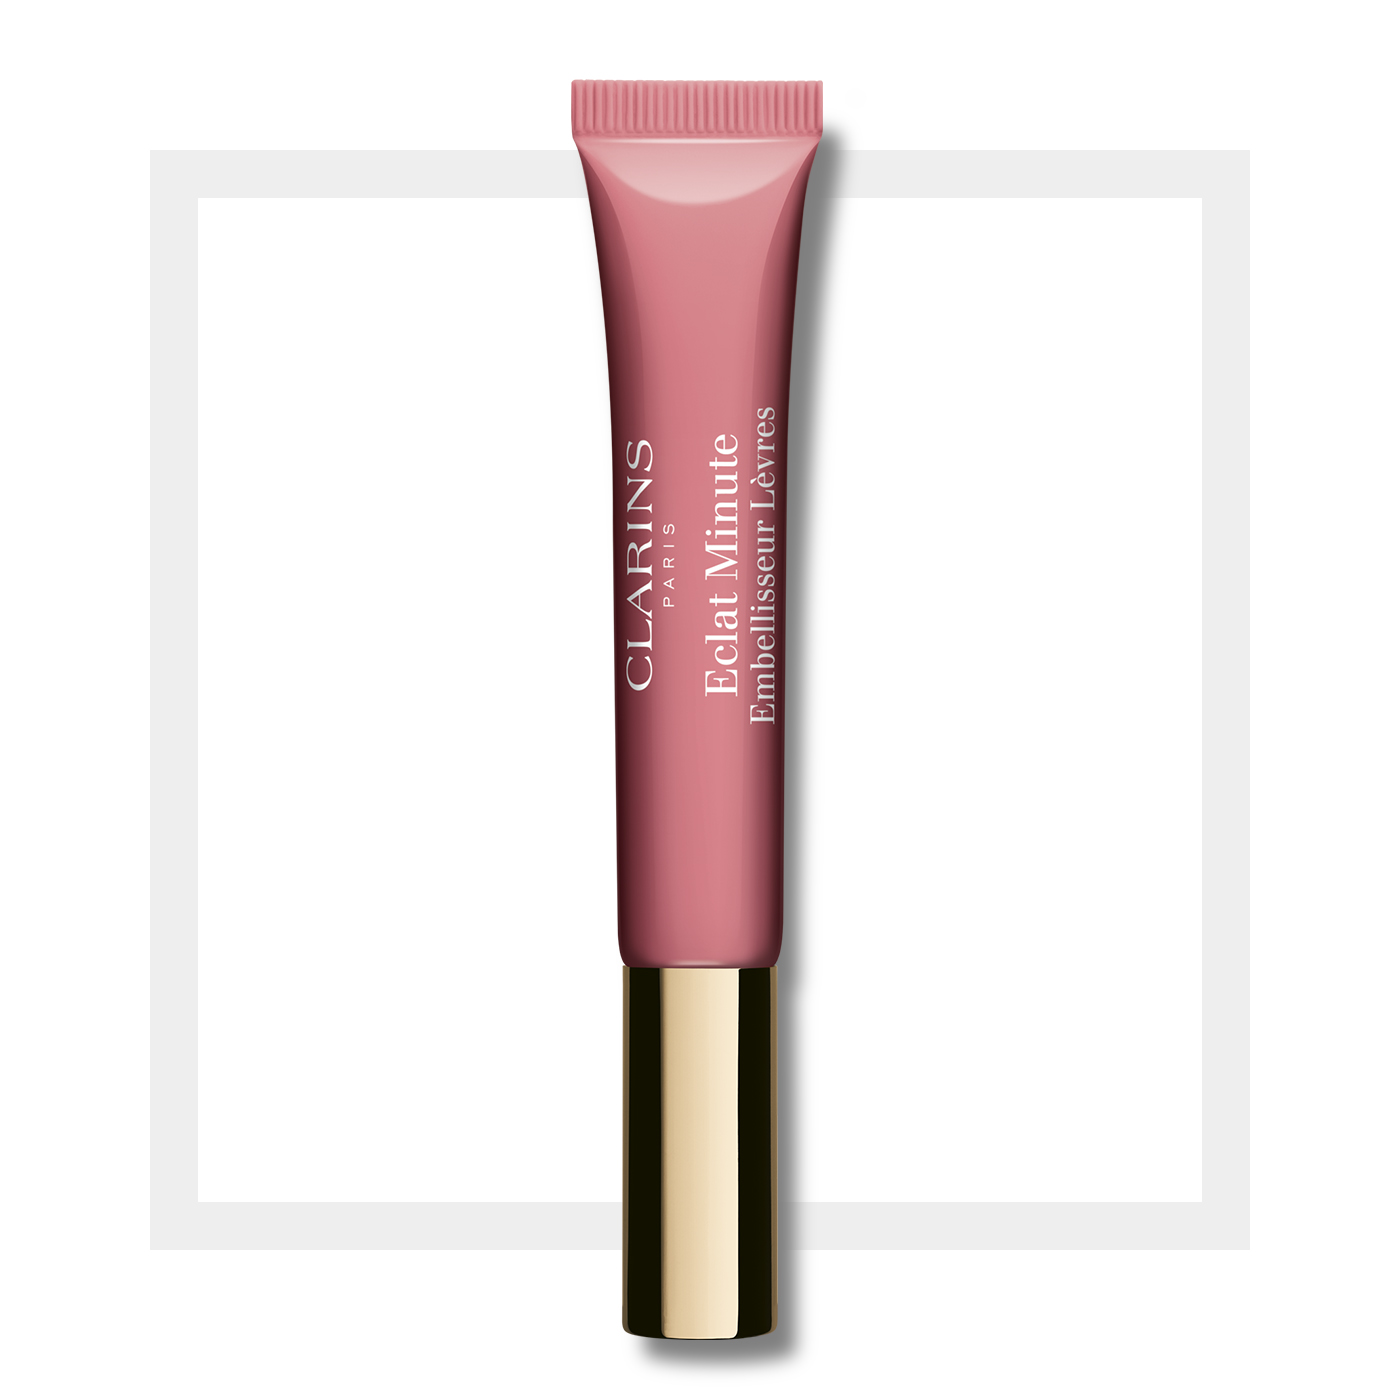 Instant Light Natural Lip Perfector Lip Balms Clarins